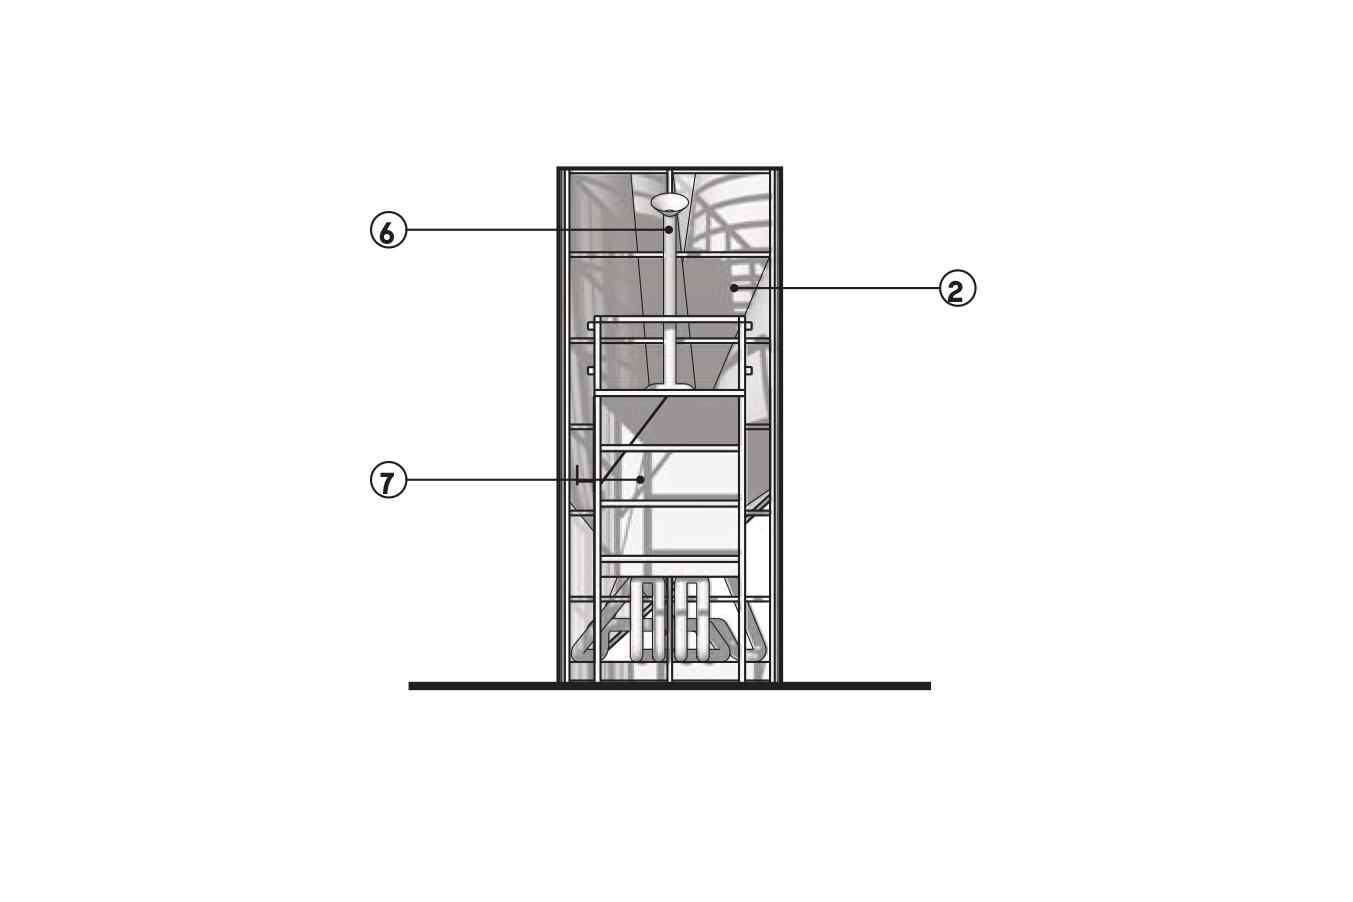 """Elevation 2  1.  Black perforated corrugated aluminum cladding  2.  Painted styrene cones  3.  Shoulder screw connectors  4.  1.5"""" Wood grid framing  5.  Painted PVC pipe  6.  Mouthpiece  7.  Existing lifeguard stand."""